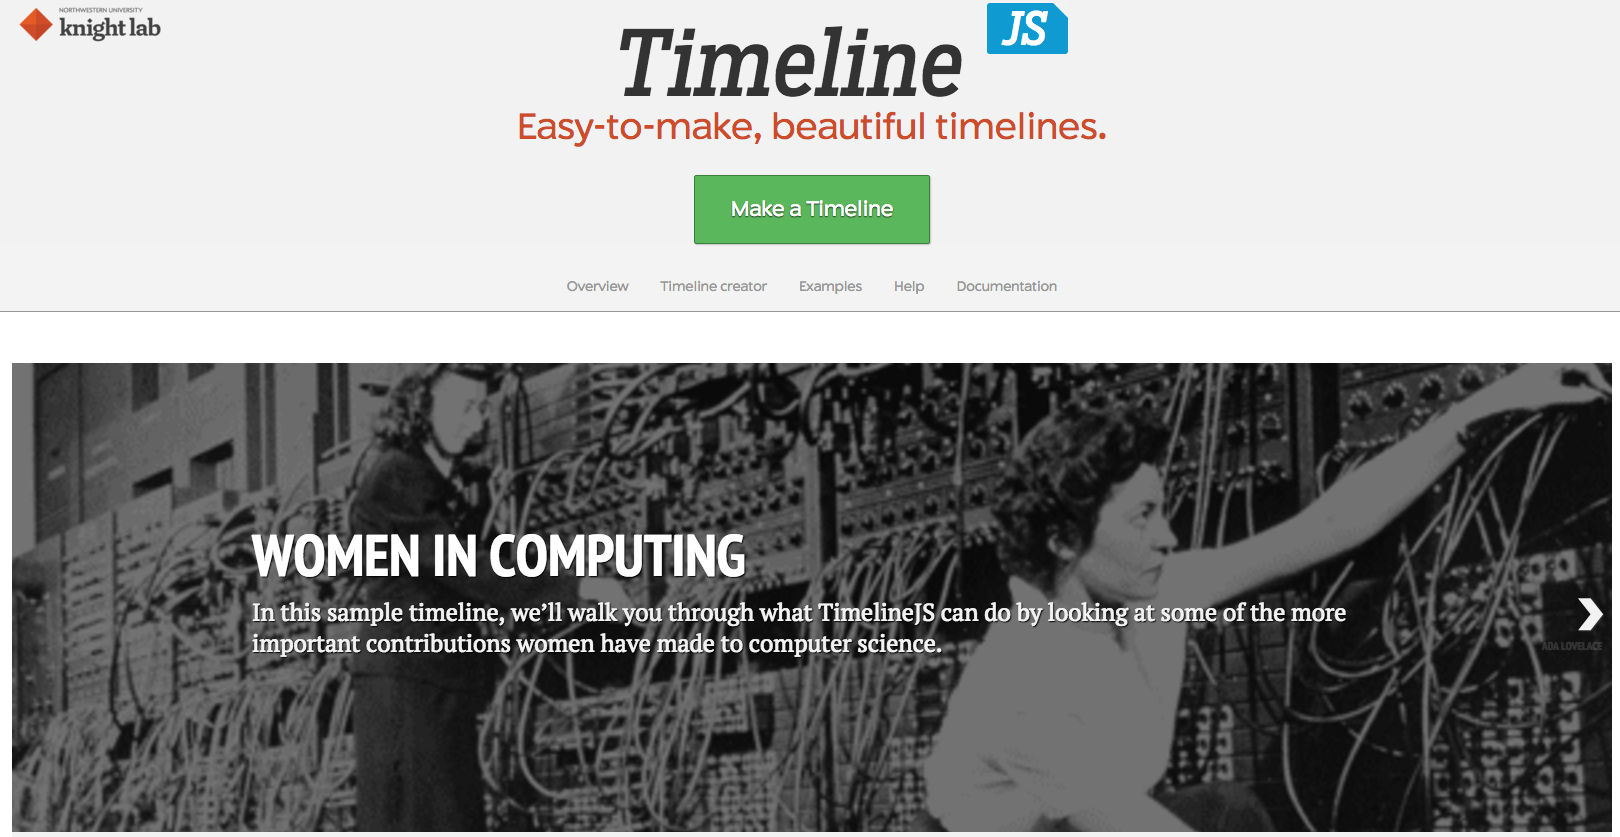 Timeline JS uses Google Sheets to help build beautiful, easy-to-use timelines that student journalists can use to add background reporting and context to their stories.